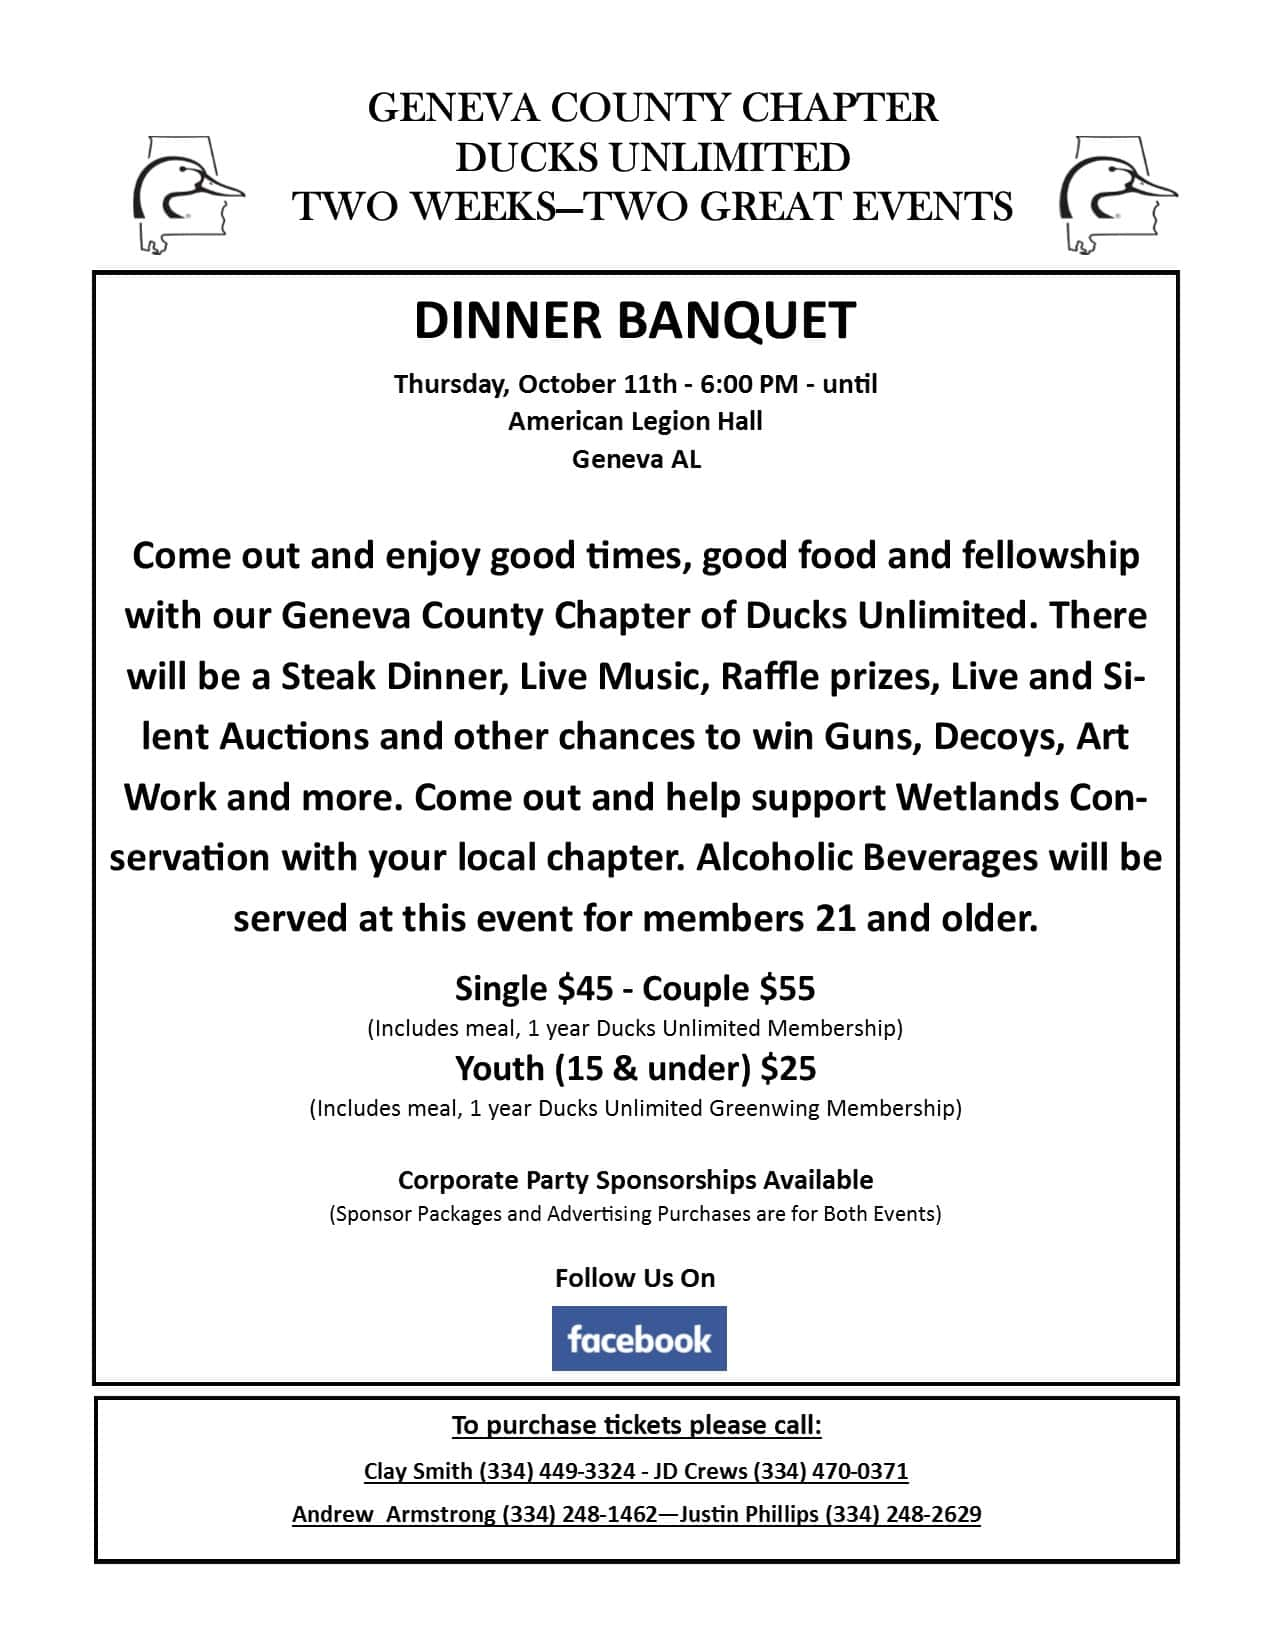 GENEVA COUNTY CHAPTER DUCKS UNLIMITED FUNDRAISER | WKMX